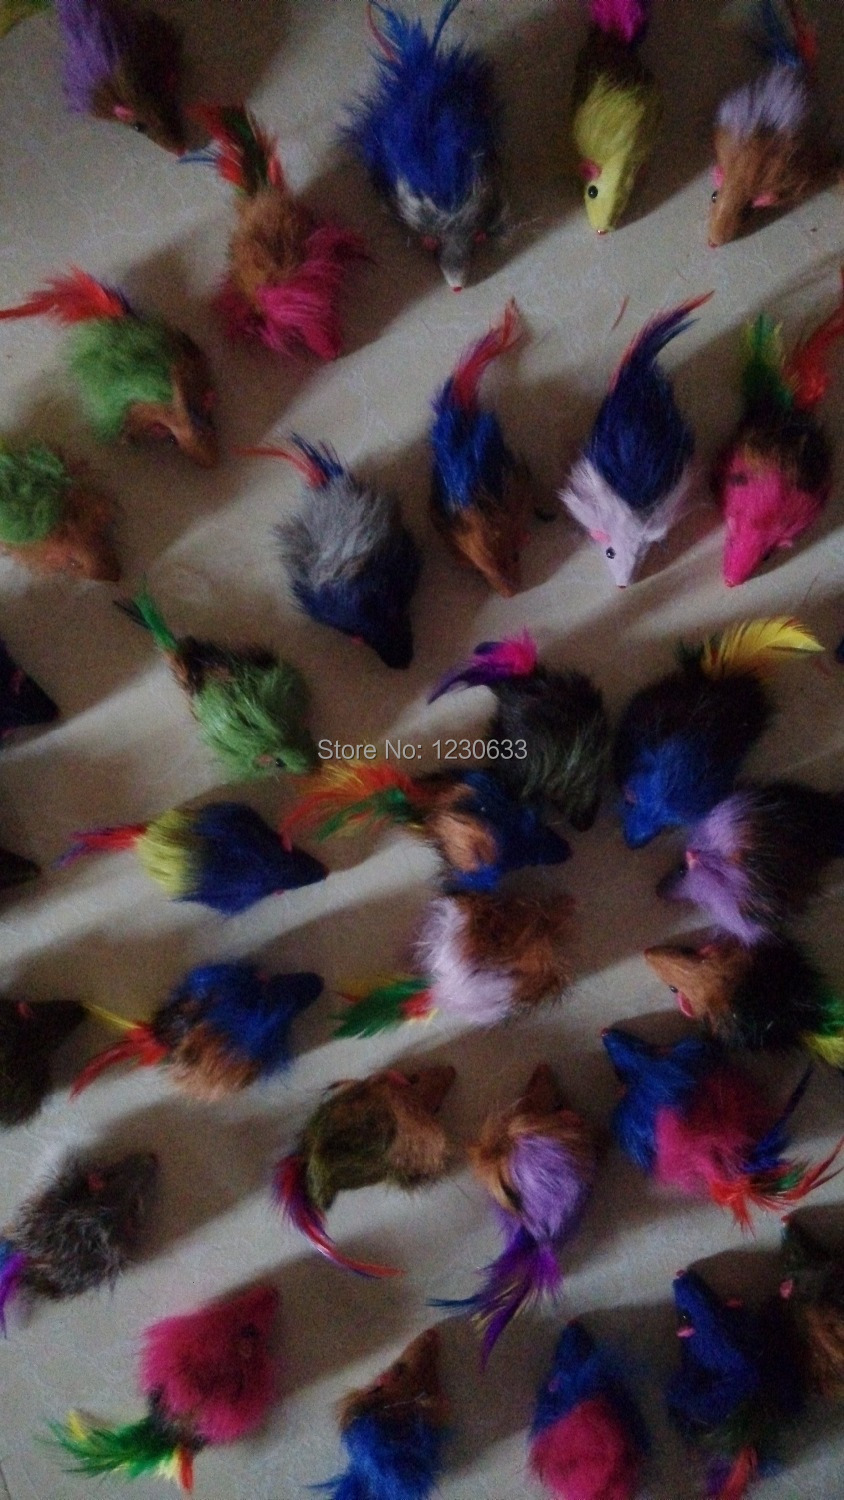 Long-haired variety of colors rabbit tail feathers cat toy mouse bite amused(China (Mainland))